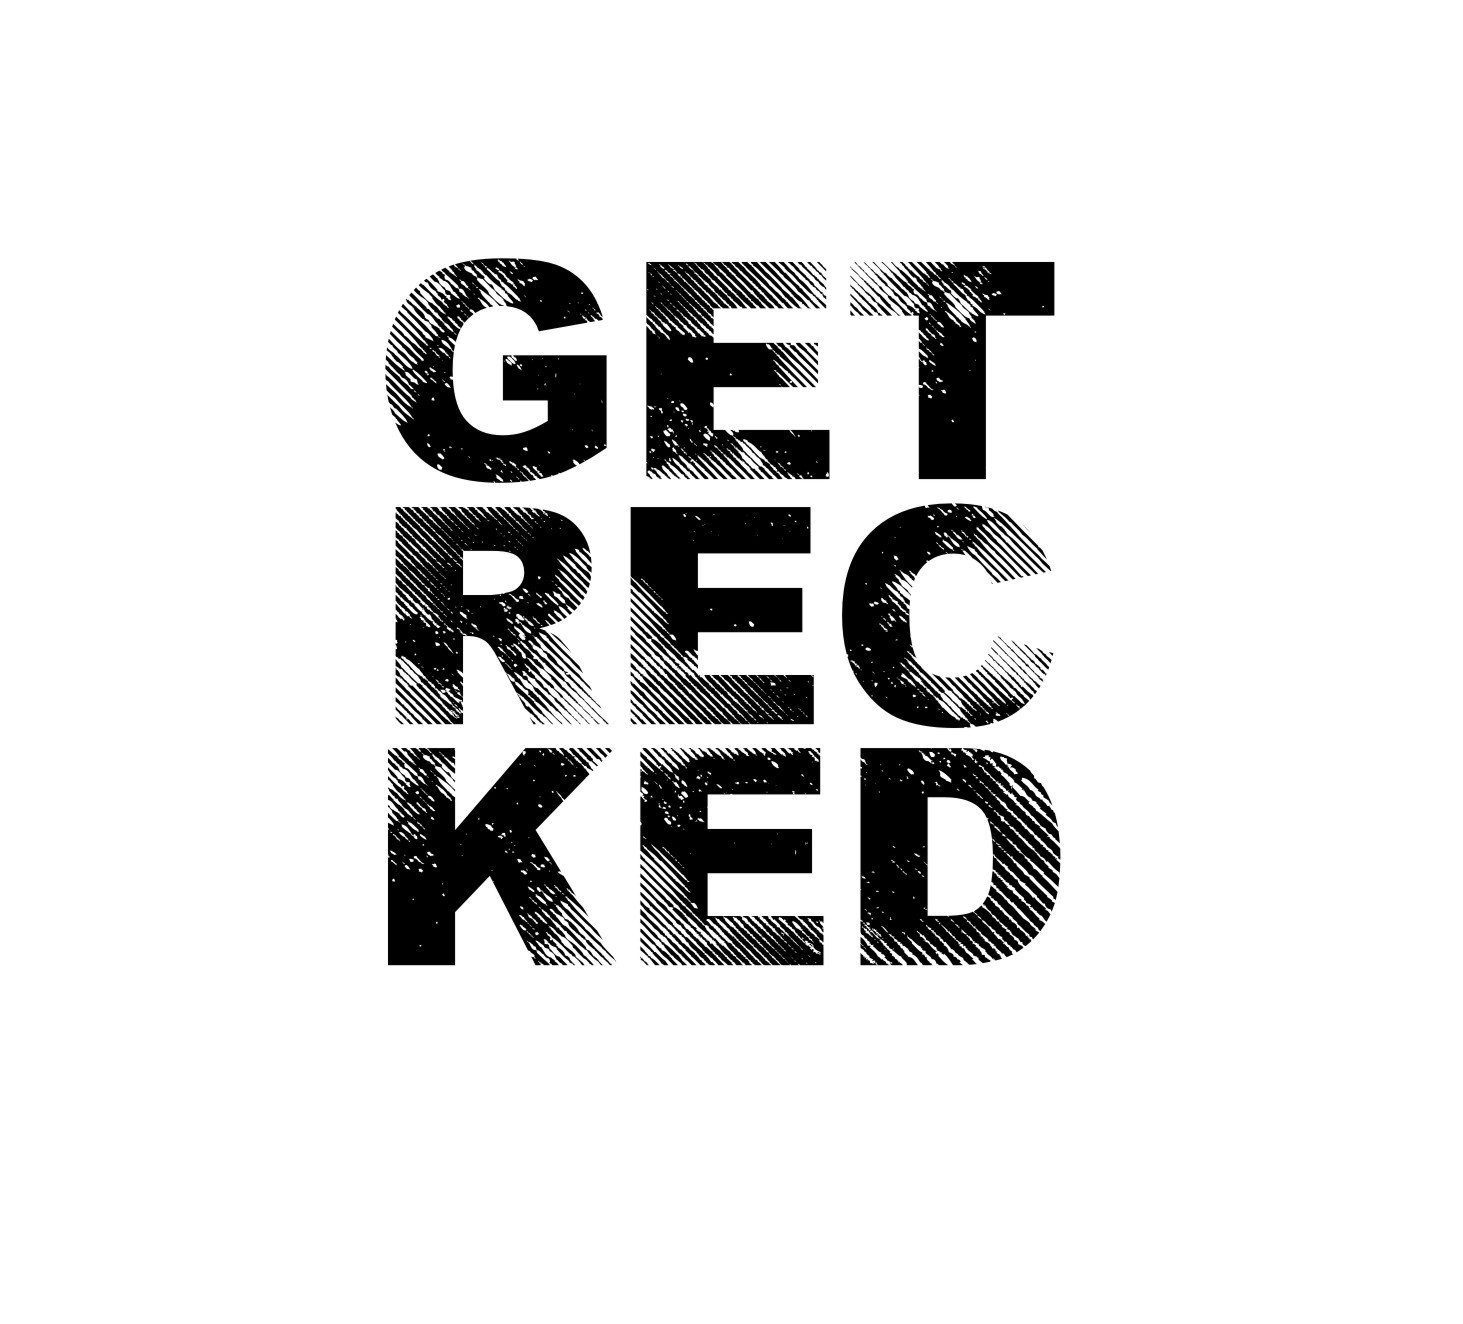 Help with Logo for Get Recked Music! (We may be famous someday...)